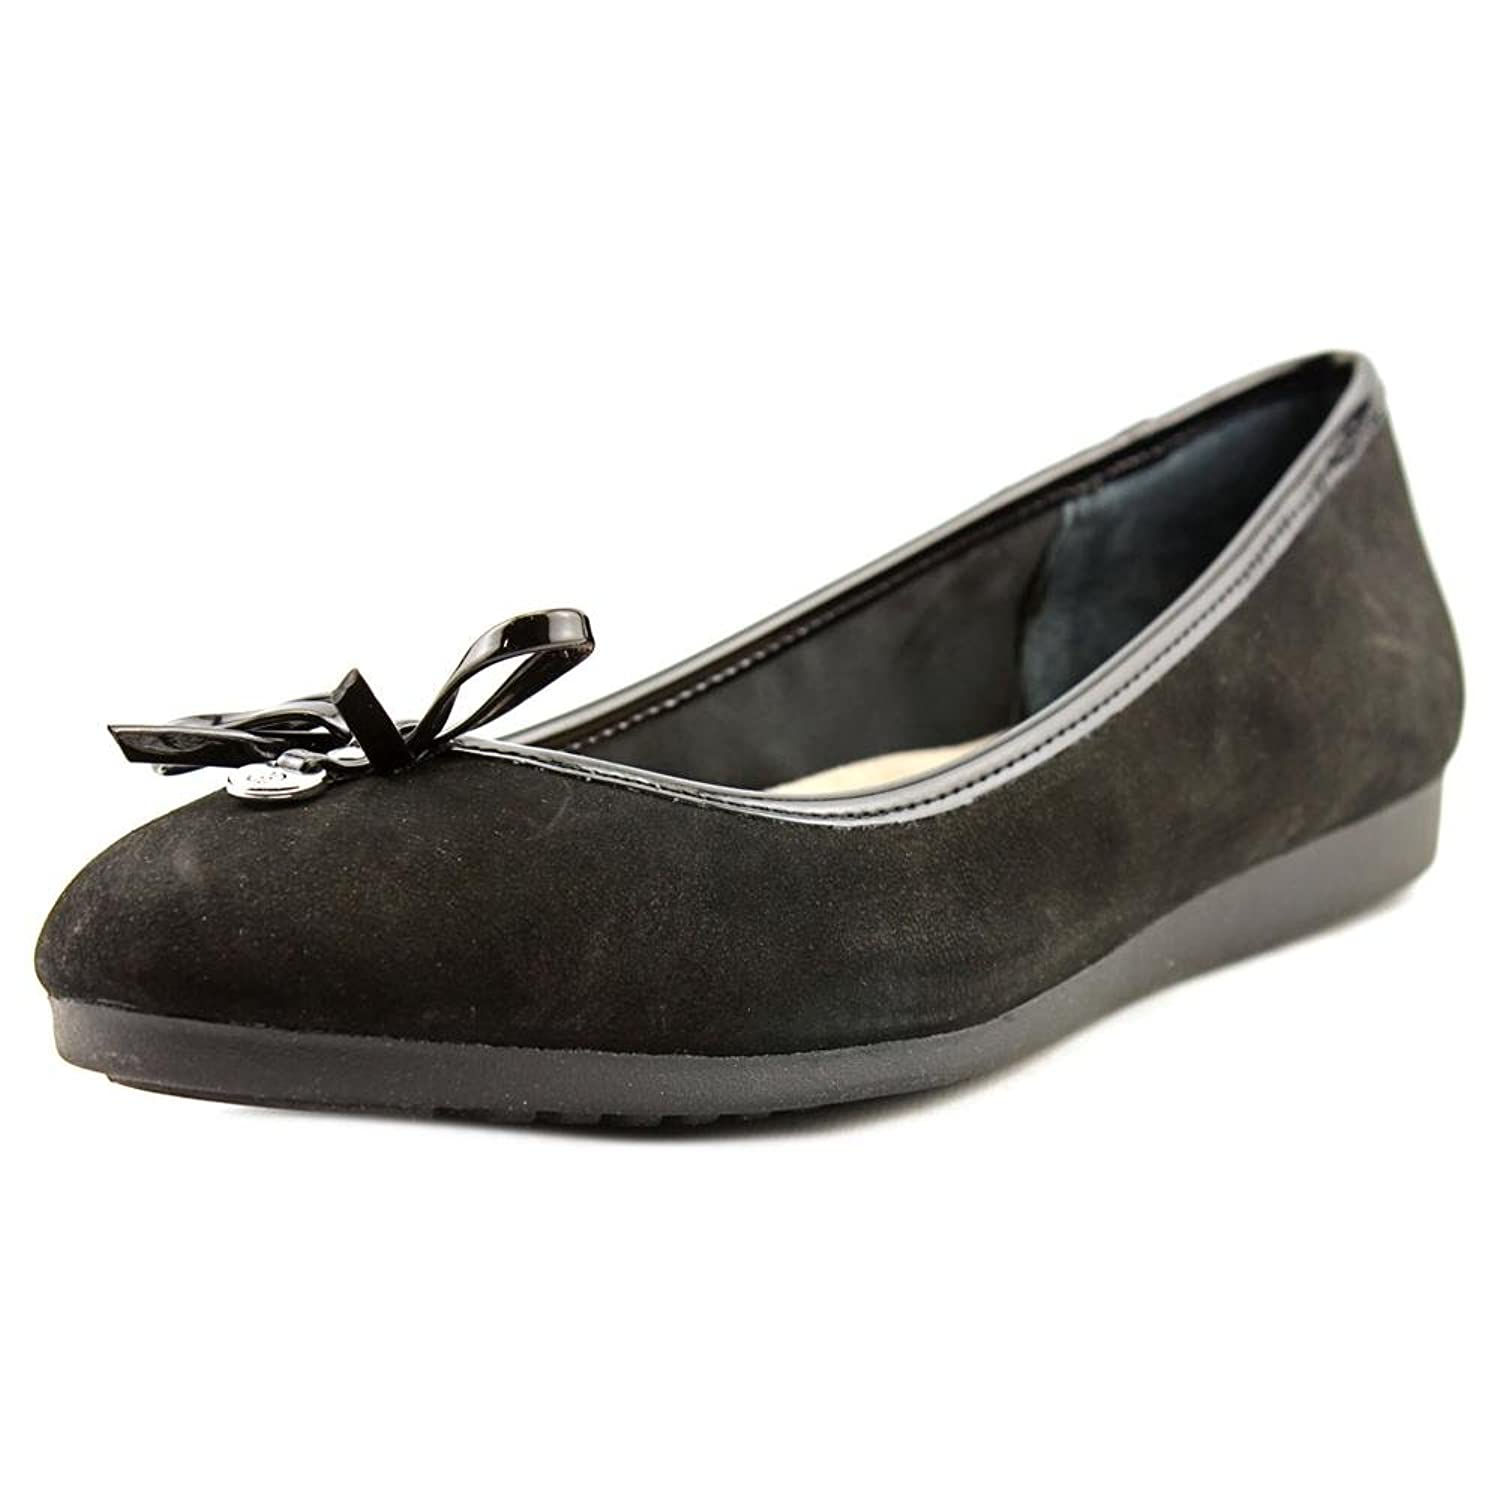 3cde1c8b9b6a low-cost Giani Bernini Odeysa Women Round Toe Suede Black Flats ...